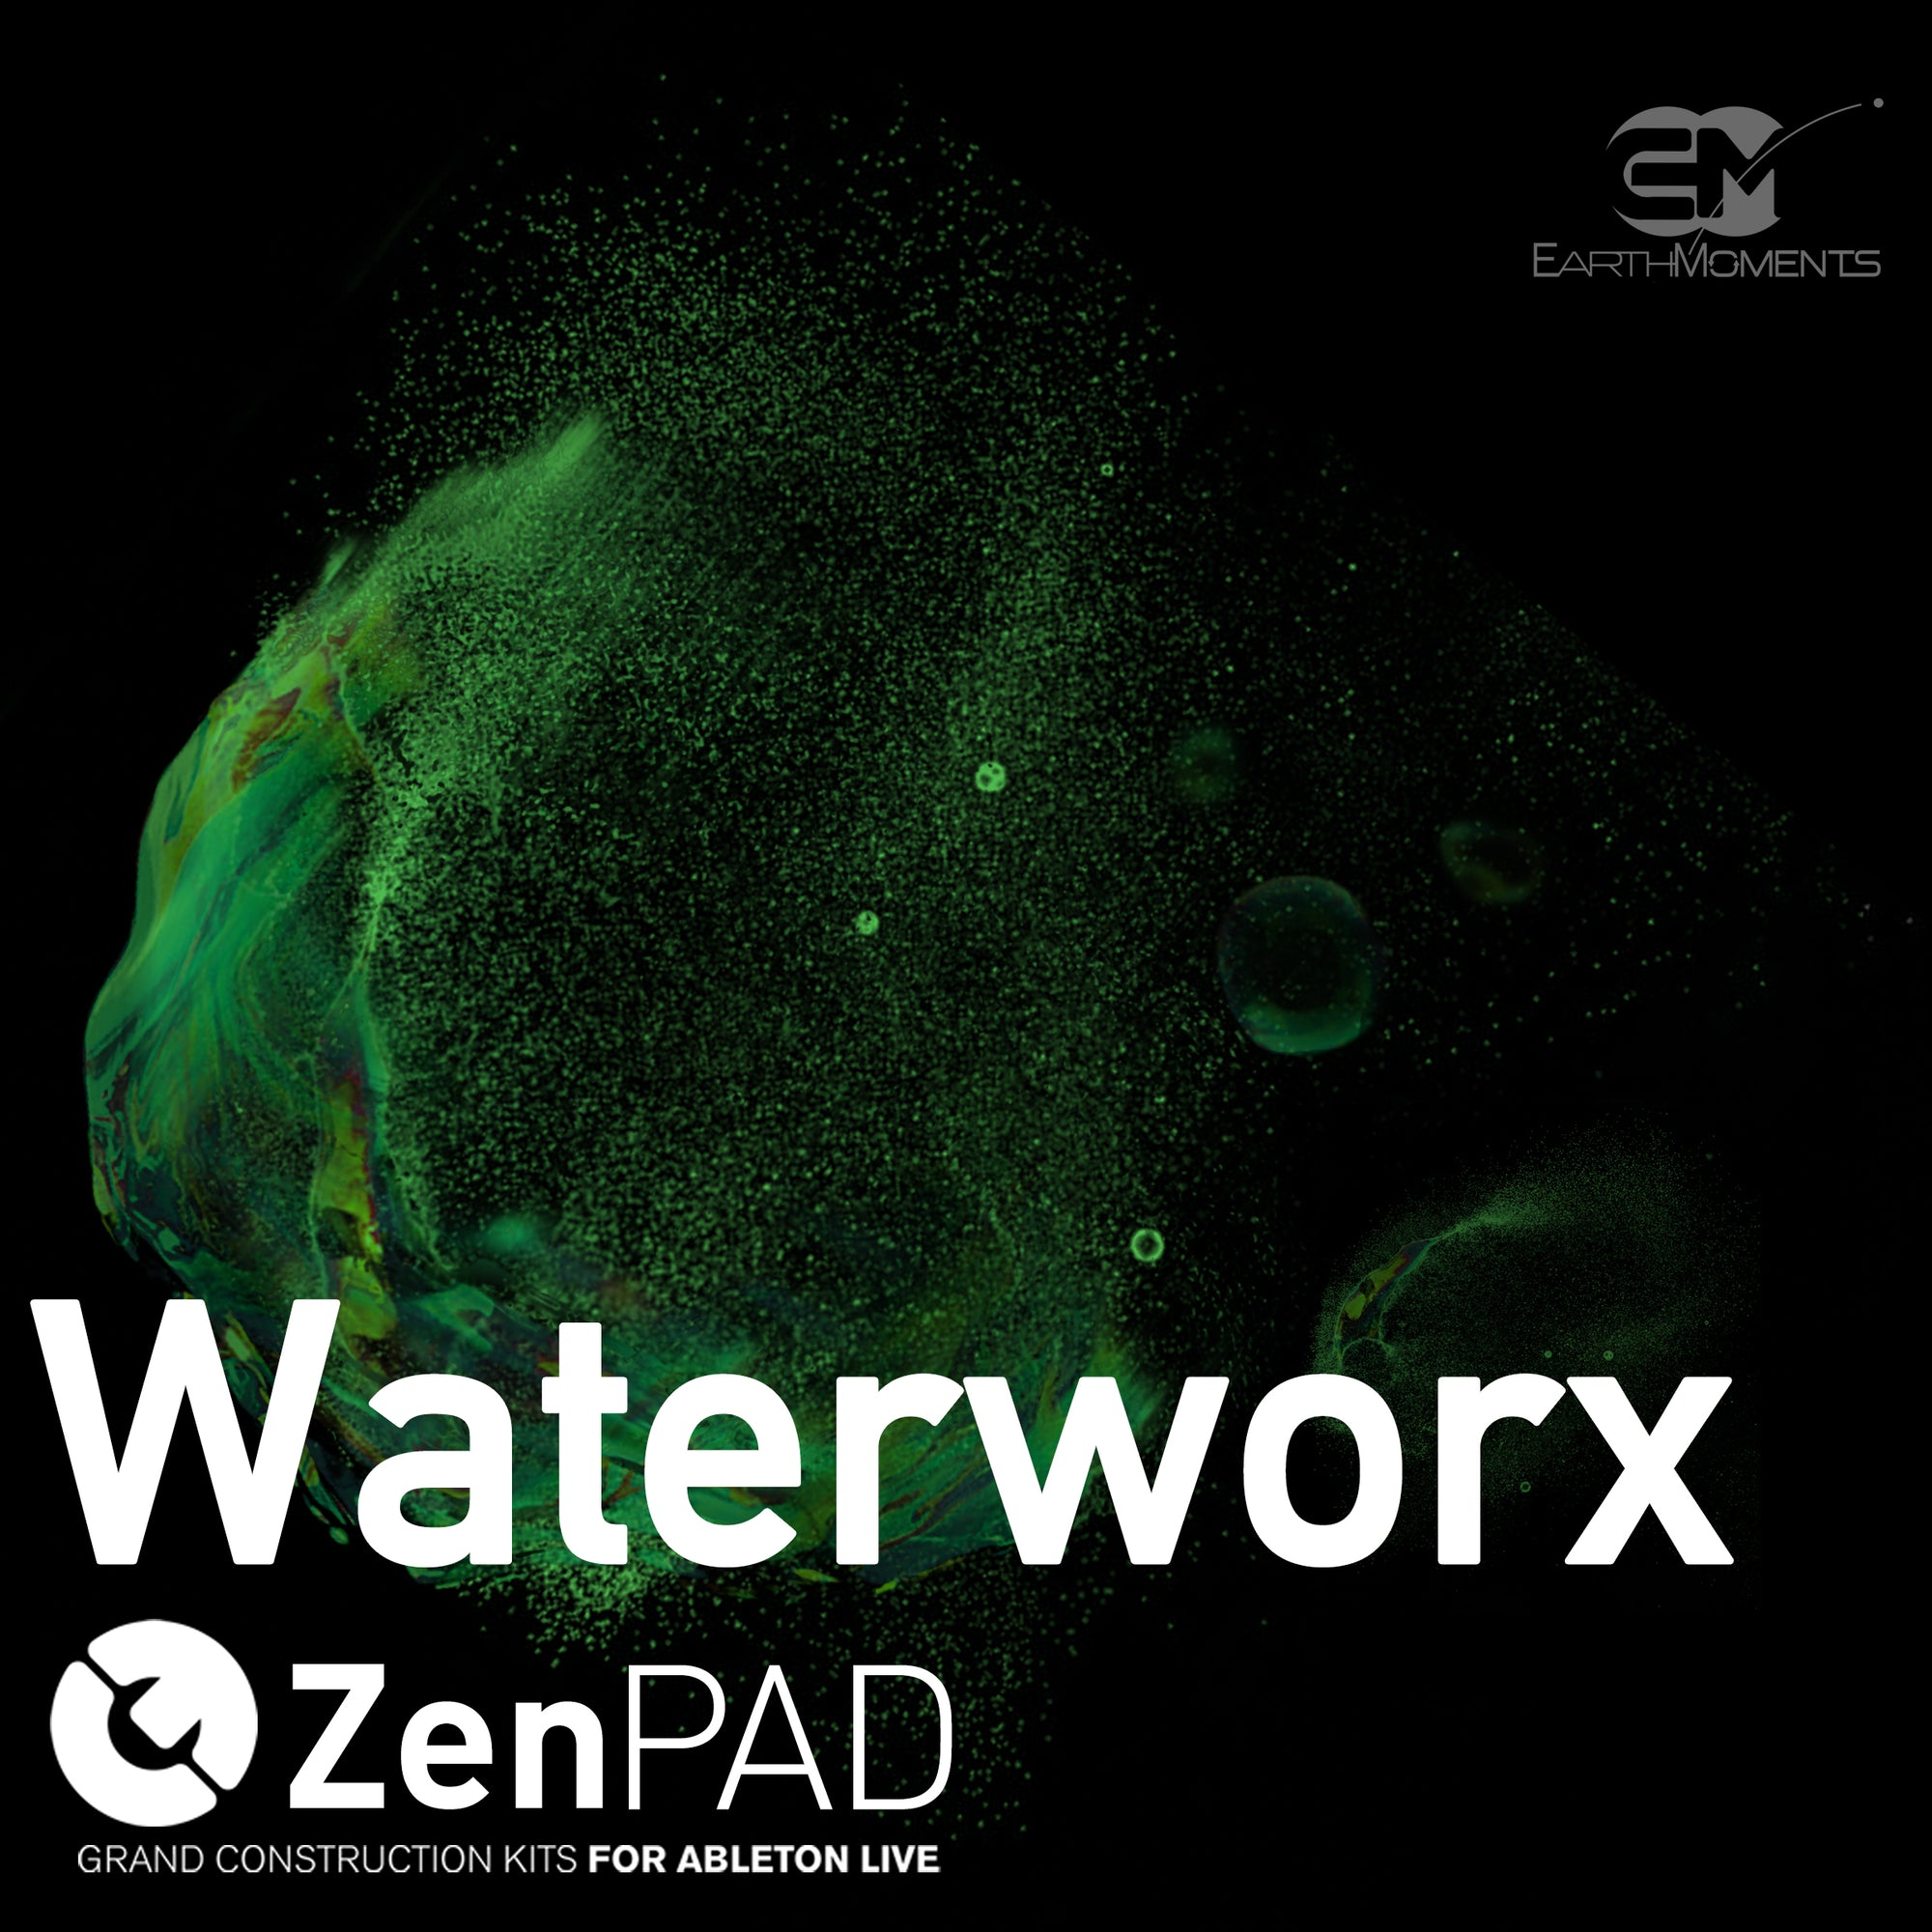 ZenPad Waterworx / Grand Construction Kit for Ableton Live